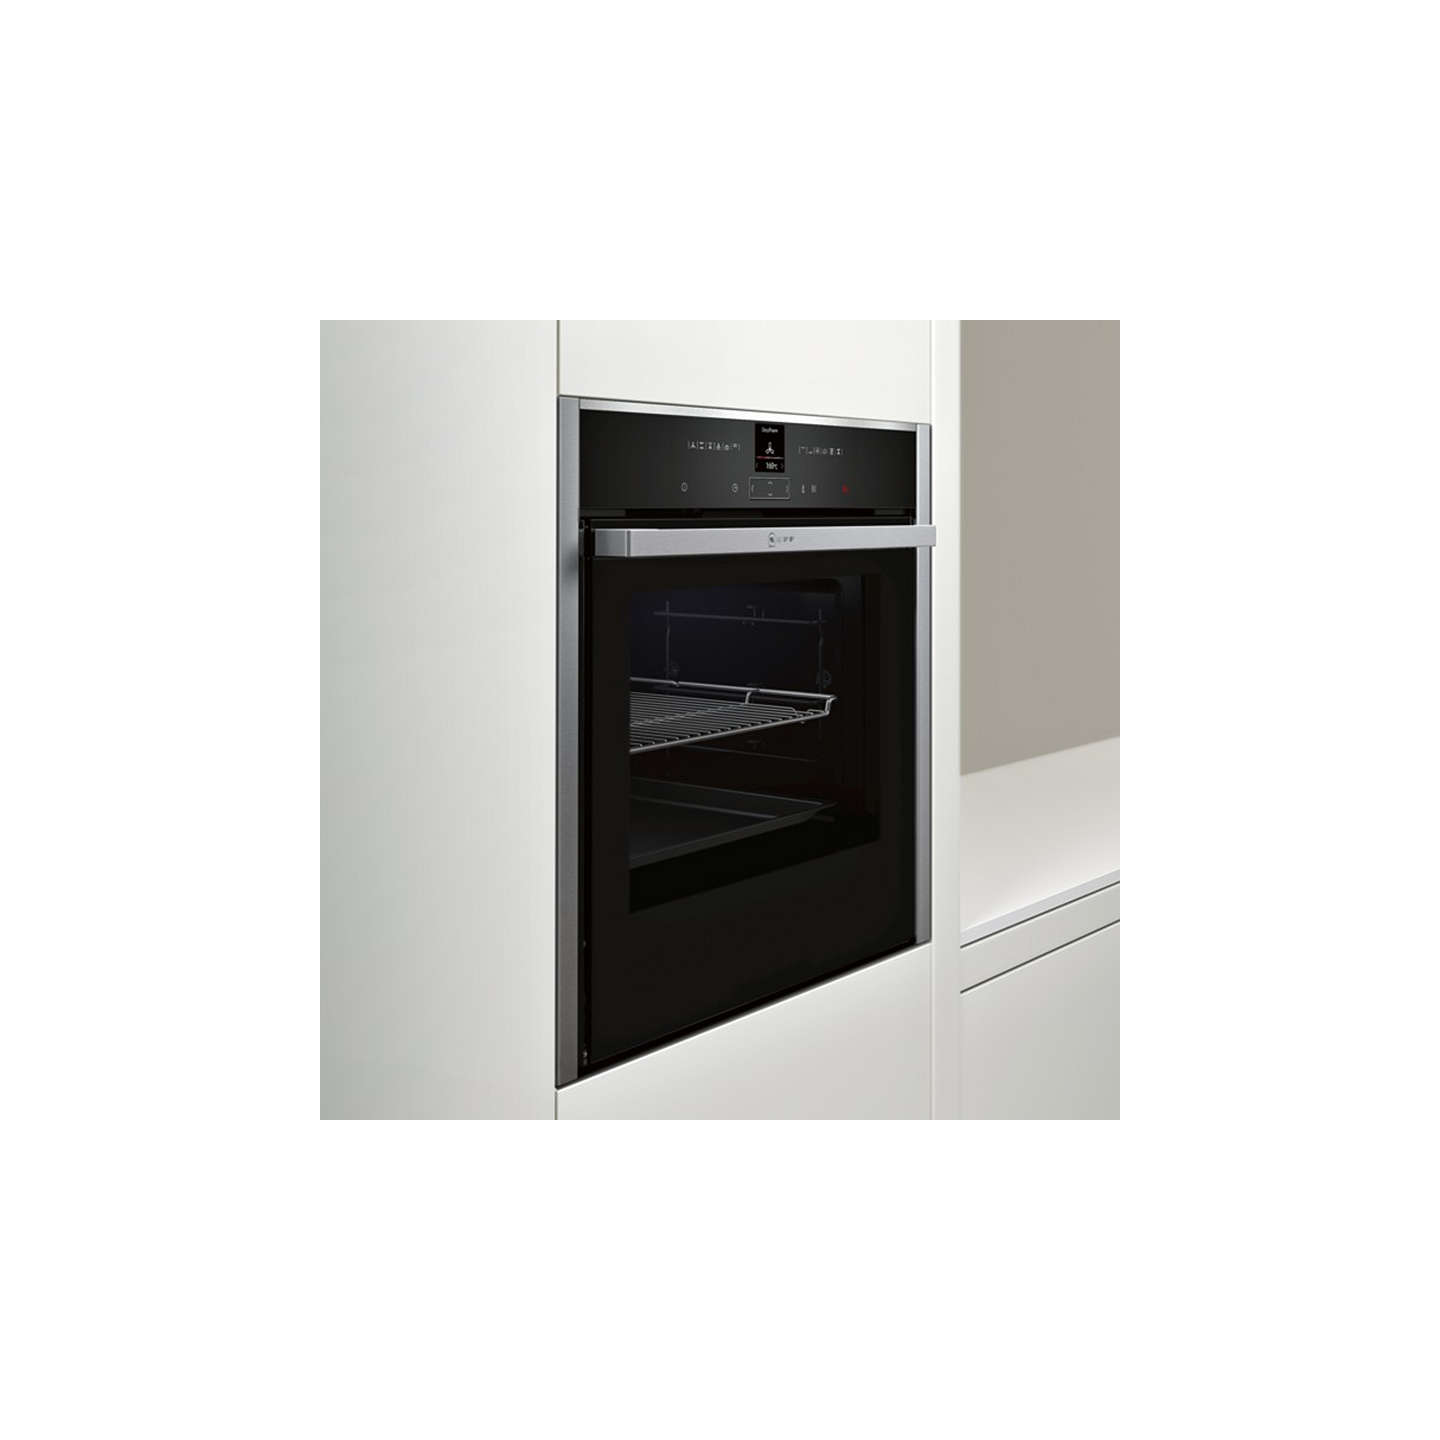 neff b57cr22n0b pyrolytic slide and hide single electric oven stainless steel at john lewis. Black Bedroom Furniture Sets. Home Design Ideas